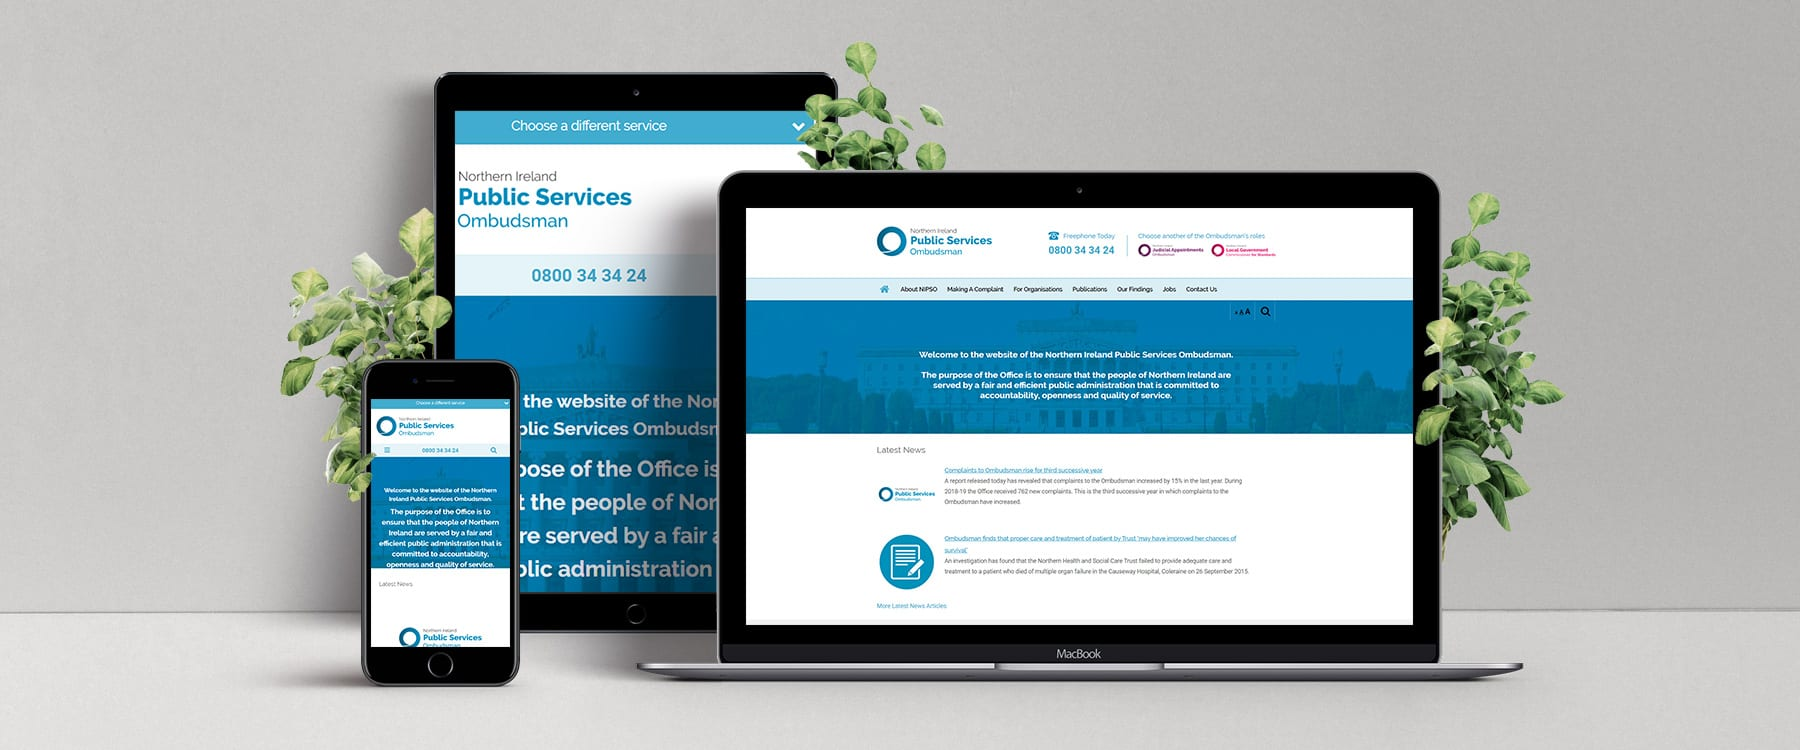 New website for restructured Northern Ireland Public Service Ombudsman Image